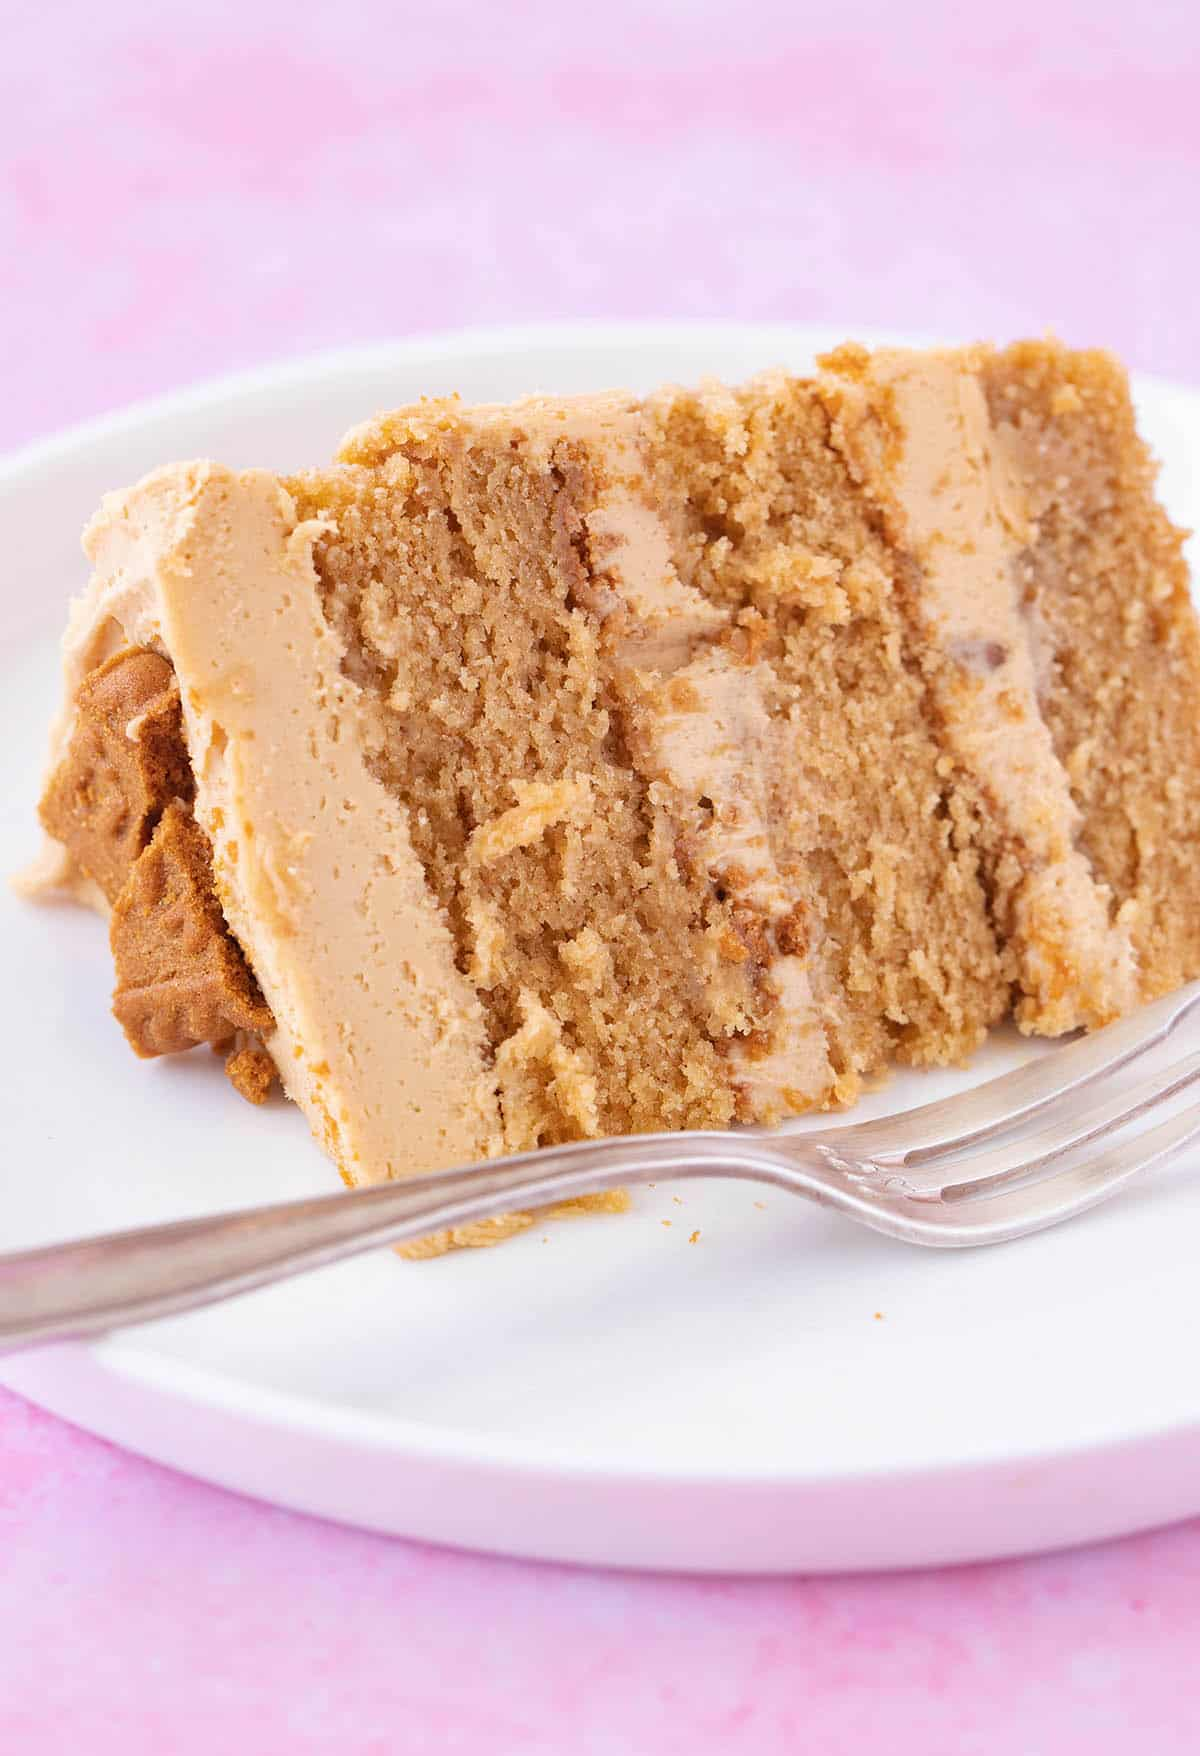 Close up of a slice of Biscoff Cake on a white plate